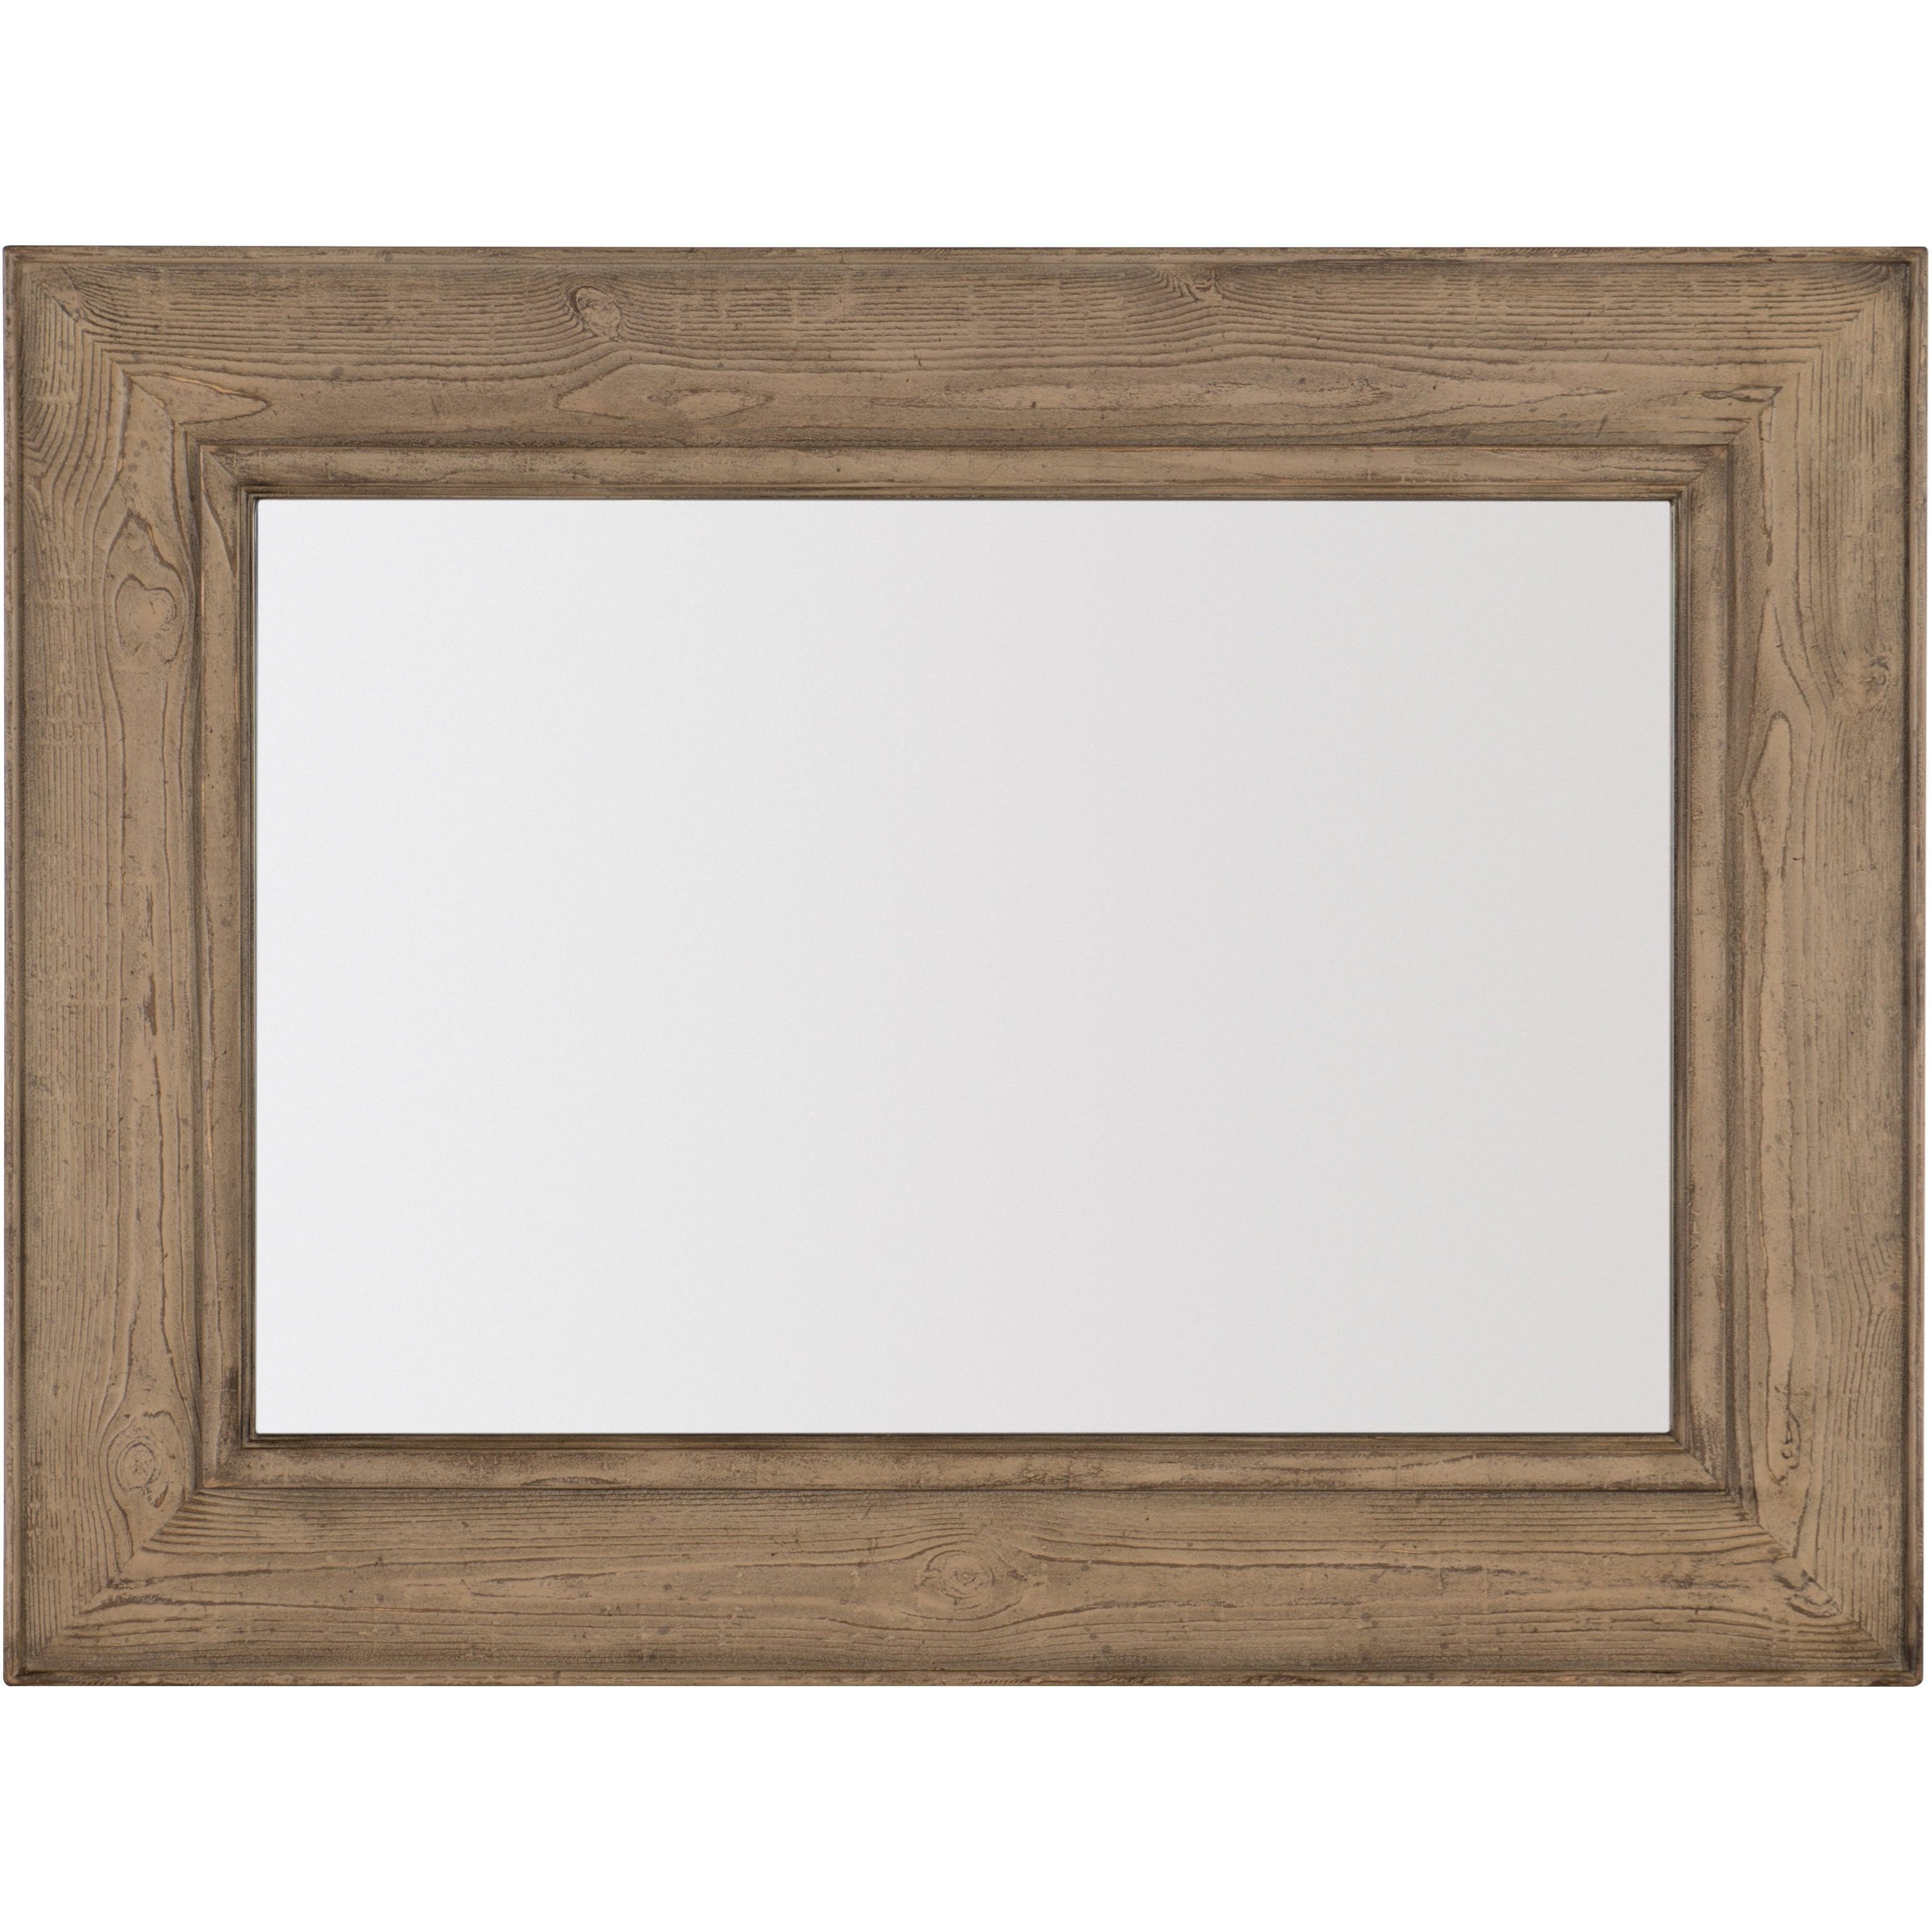 Ciao Bella Landscape Mirror by Hooker Furniture at Miller Waldrop Furniture and Decor